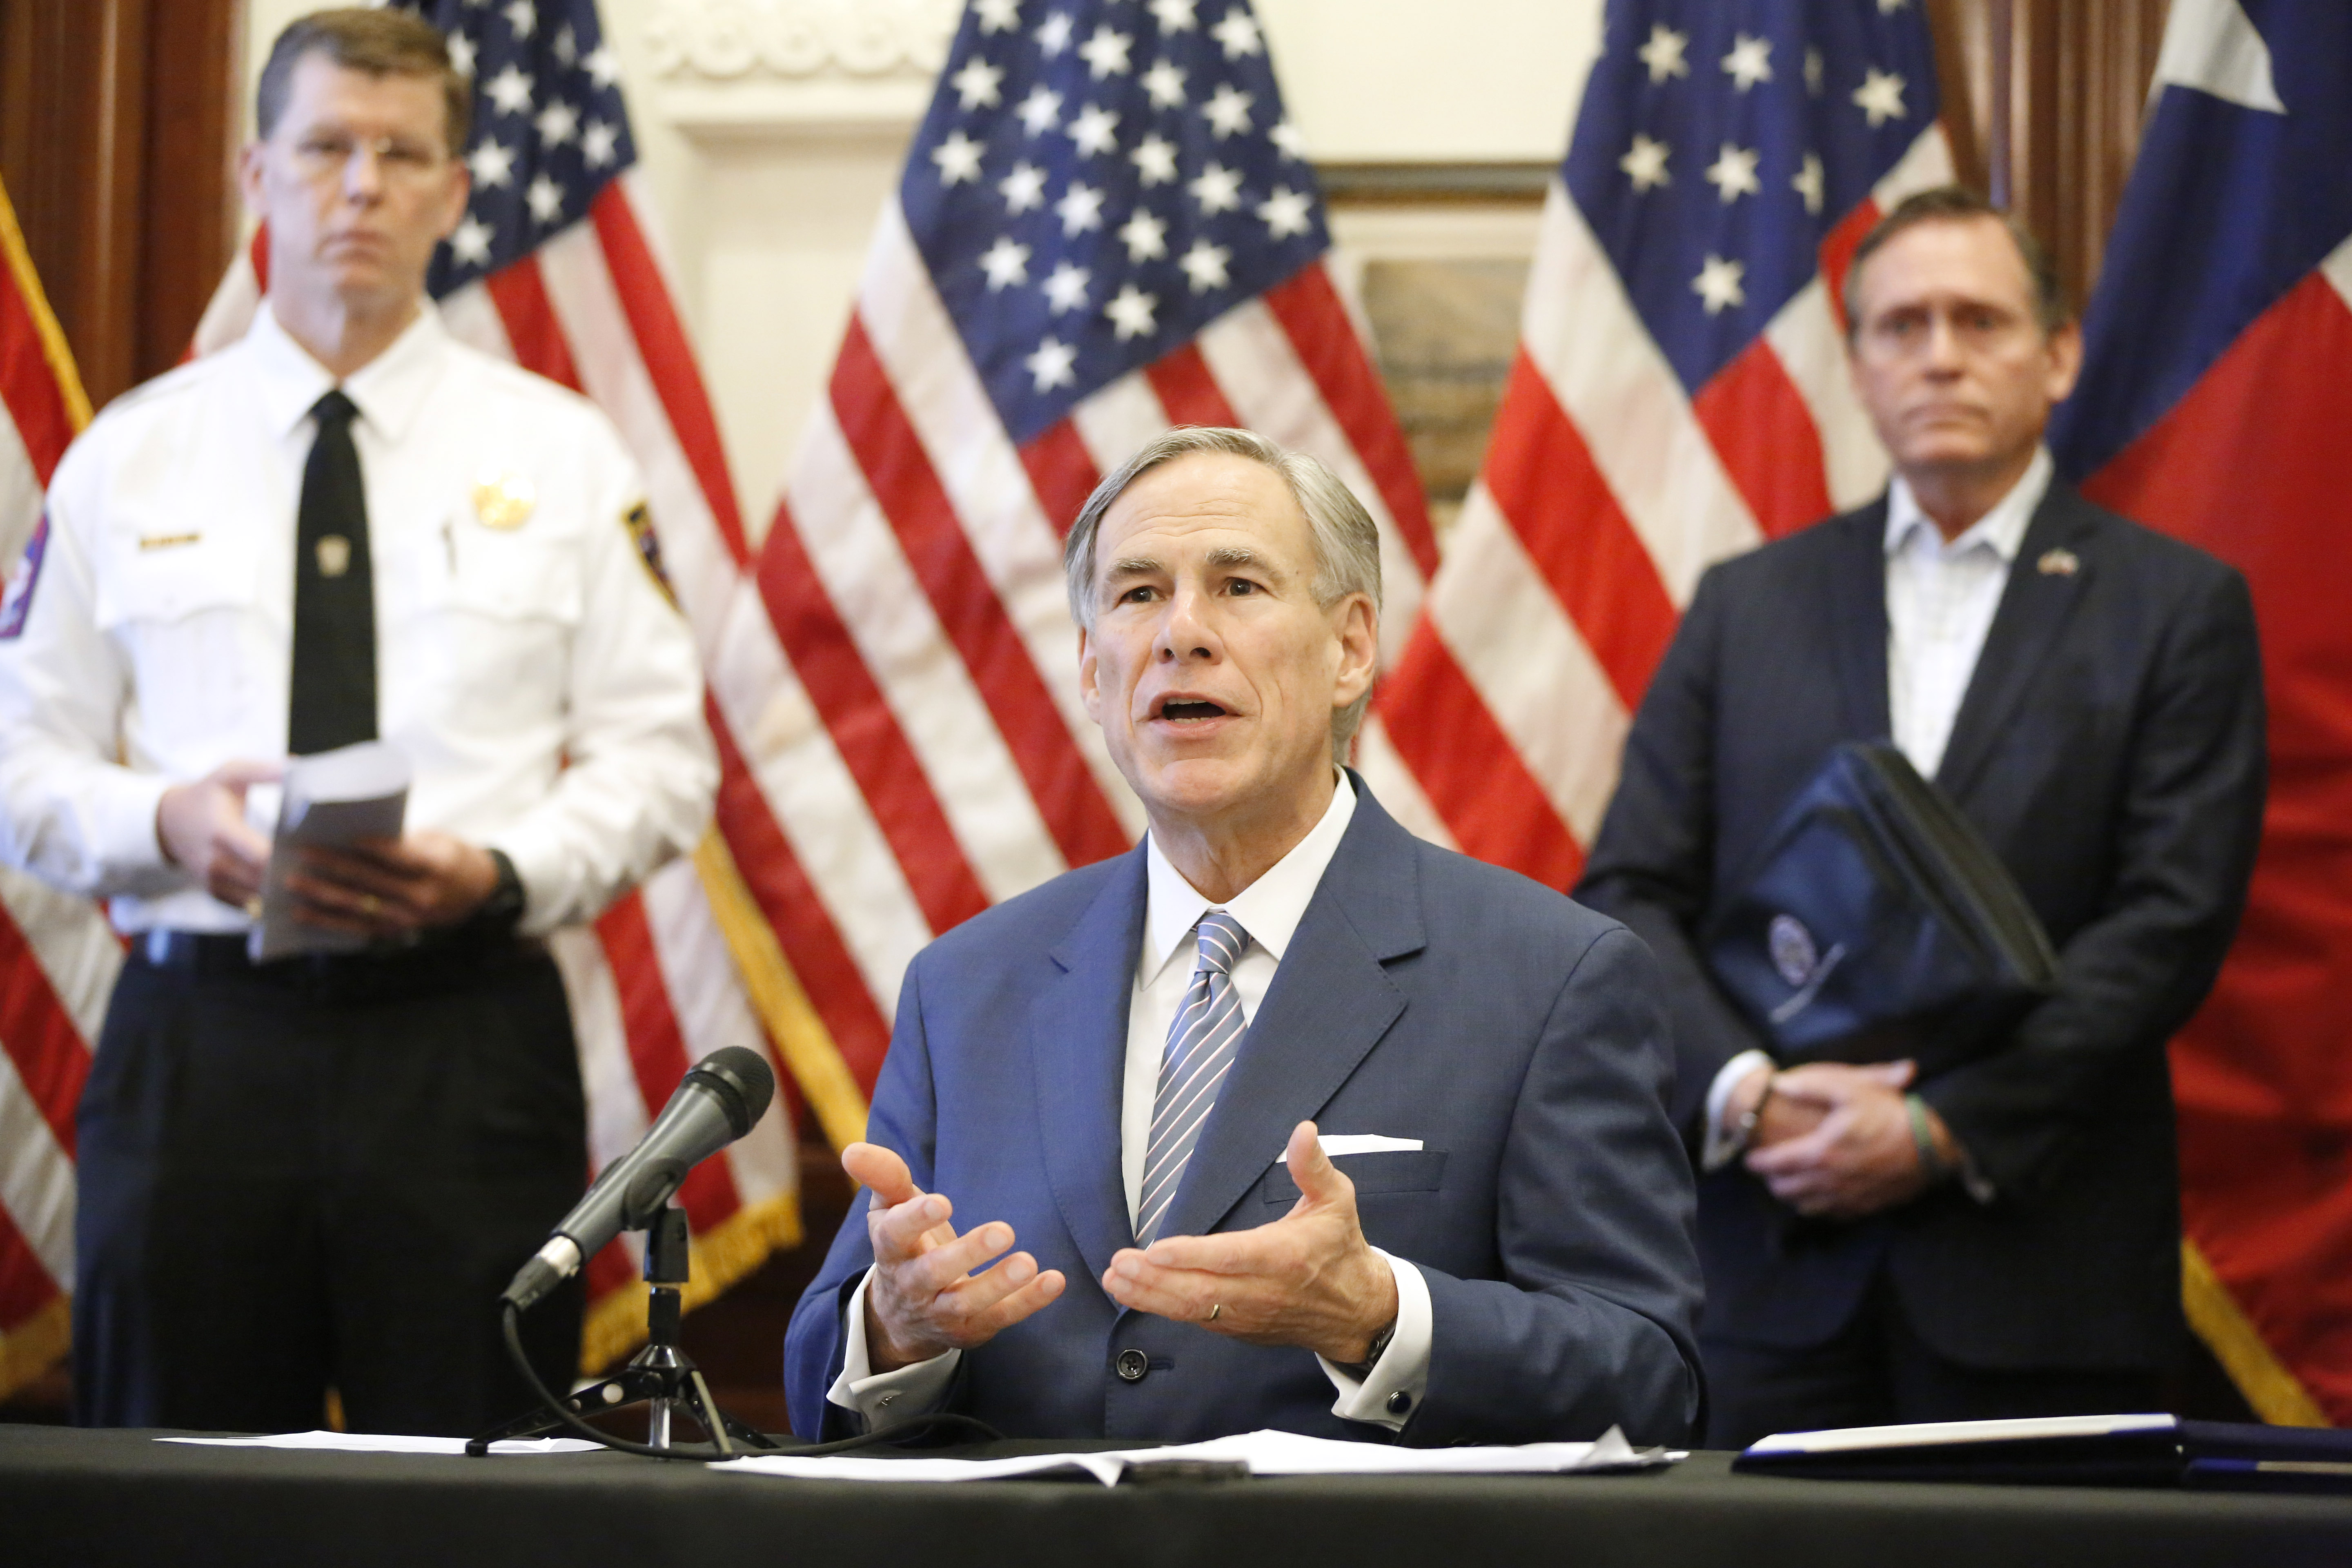 Texas Governor Greg Abbott announced the US Army Corps of Engineers and the state are putting up a 250-bed field hospital at the Kay Bailey Hutchison Convention Center in downtown Dallas during a press conference at the Texas State Capitol in Austin, Sunday, March 29, 2020. (Tom Fox-Pool/Getty Images)